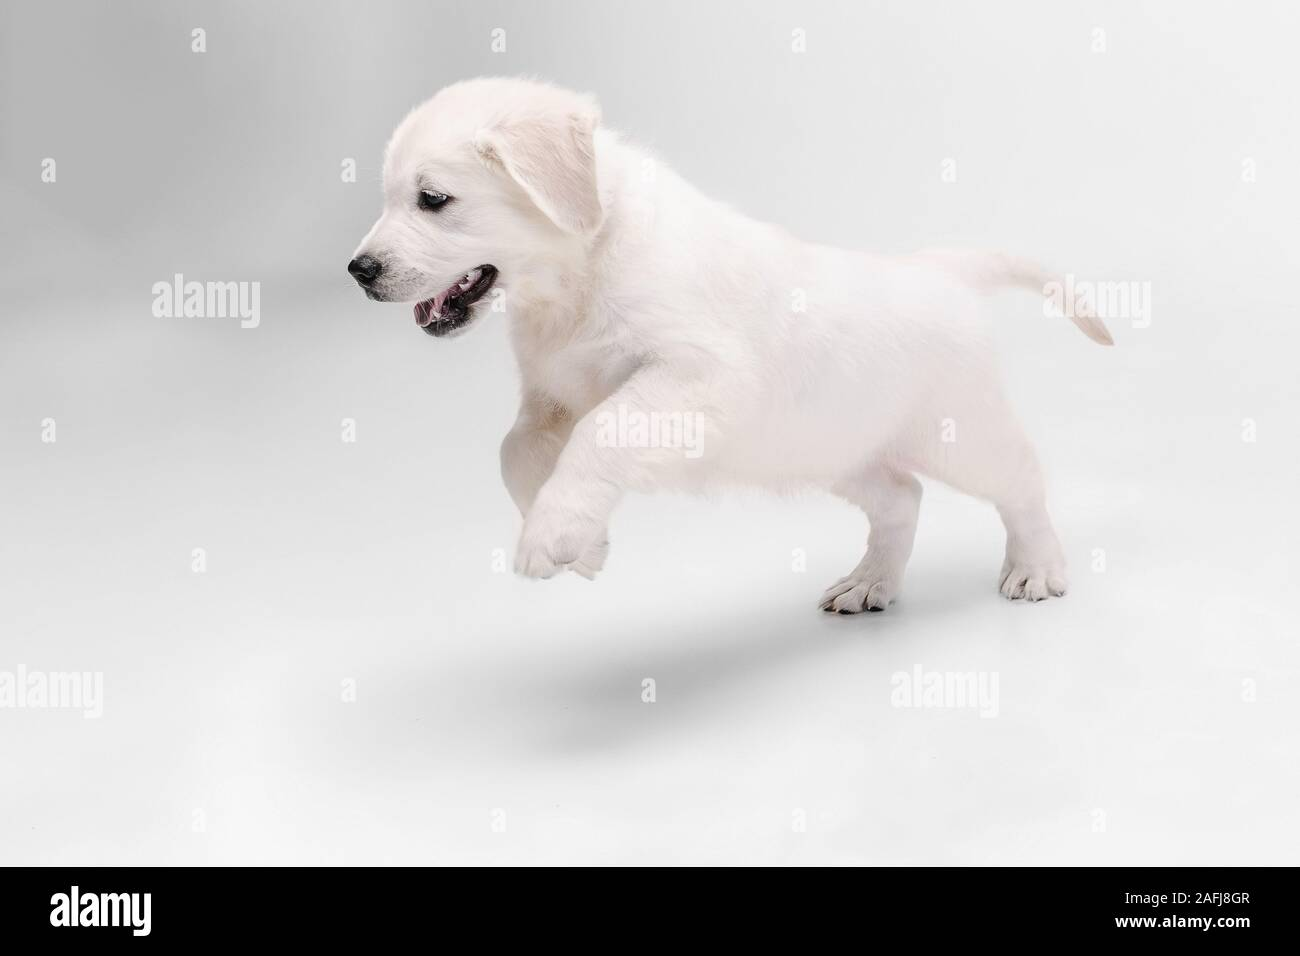 English Cream Golden Retriever High Resolution Stock Photography And Images Alamy